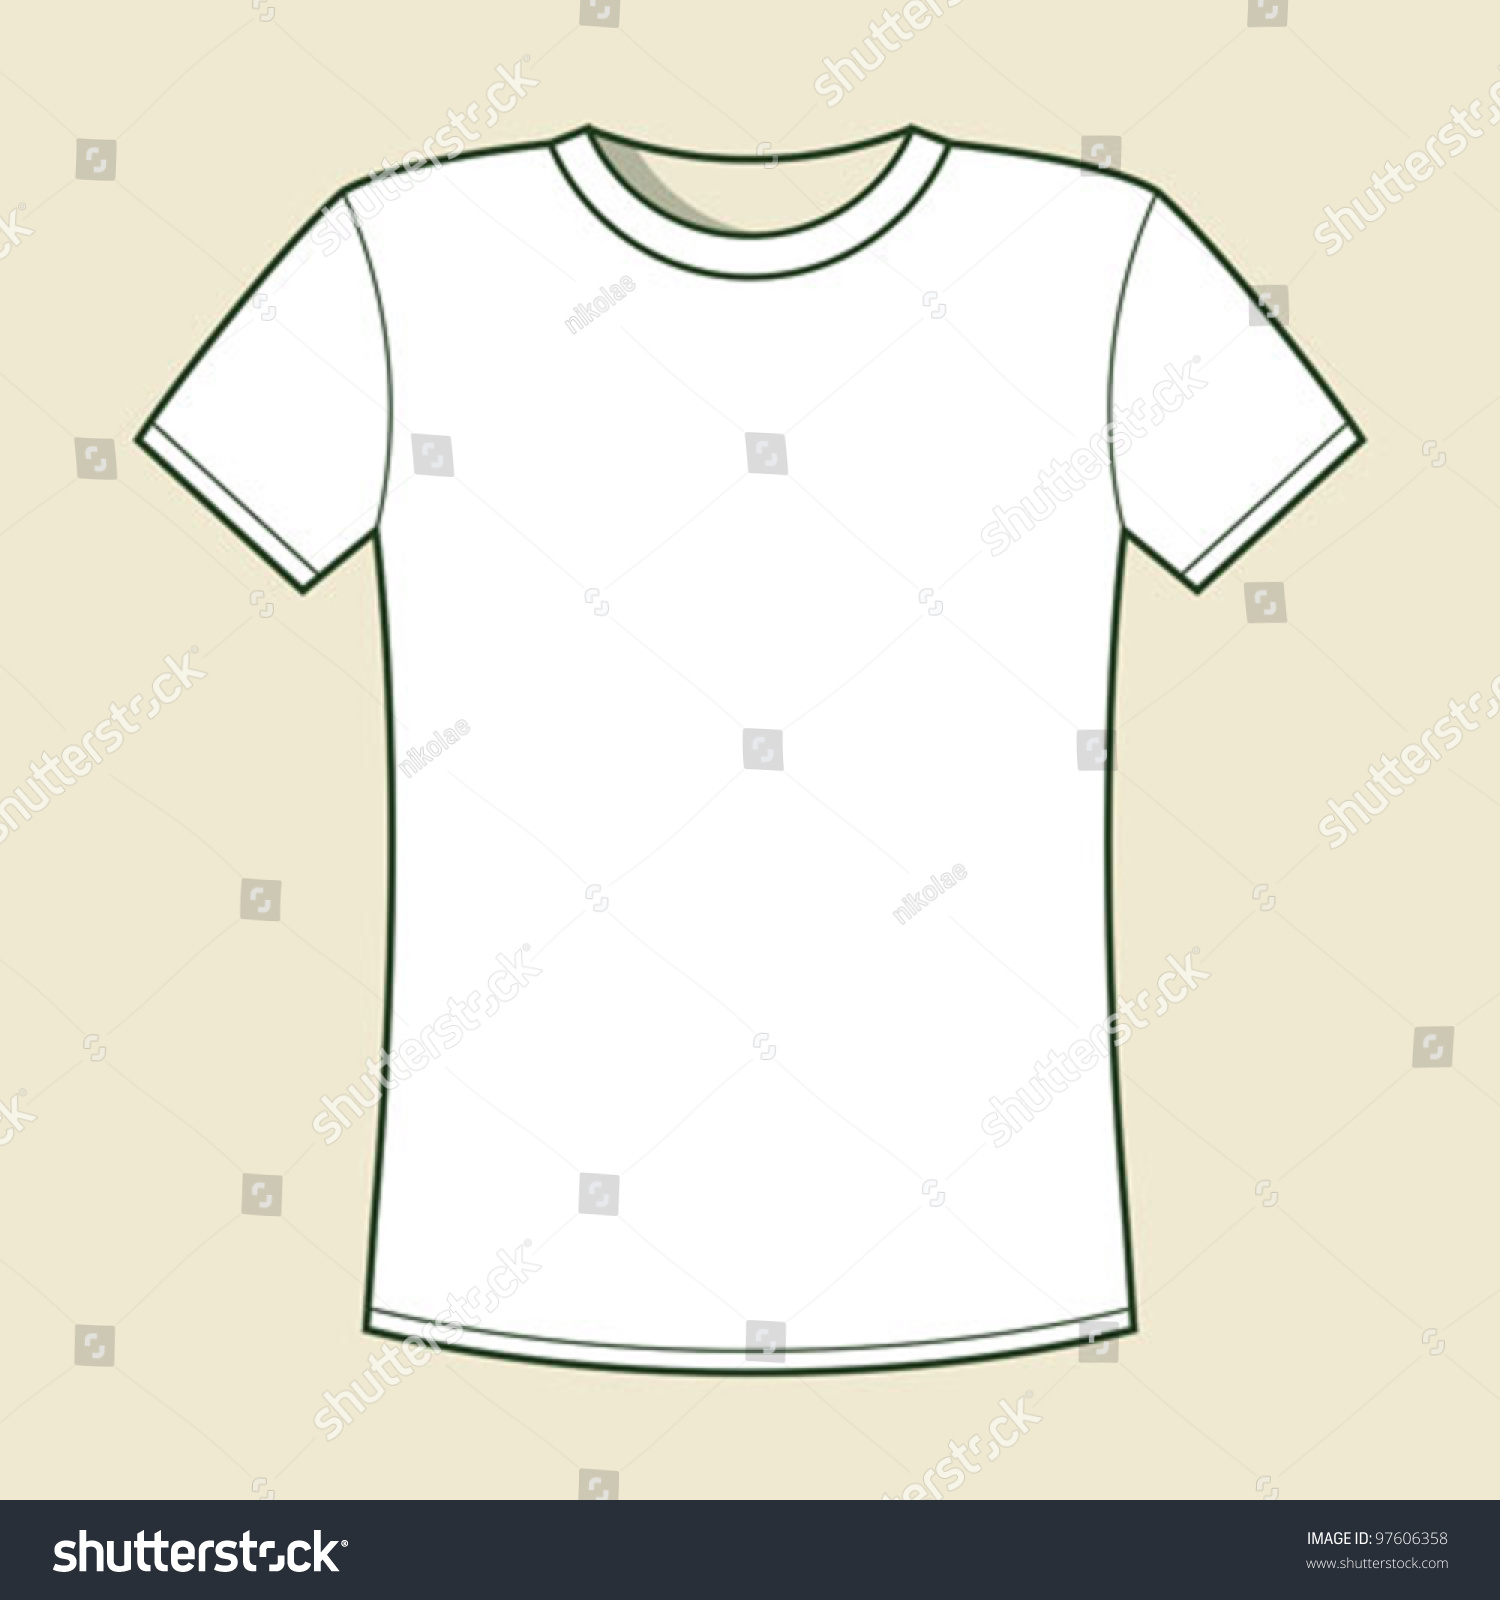 White Tshirt Template Stock Vector Royalty Free 97606358